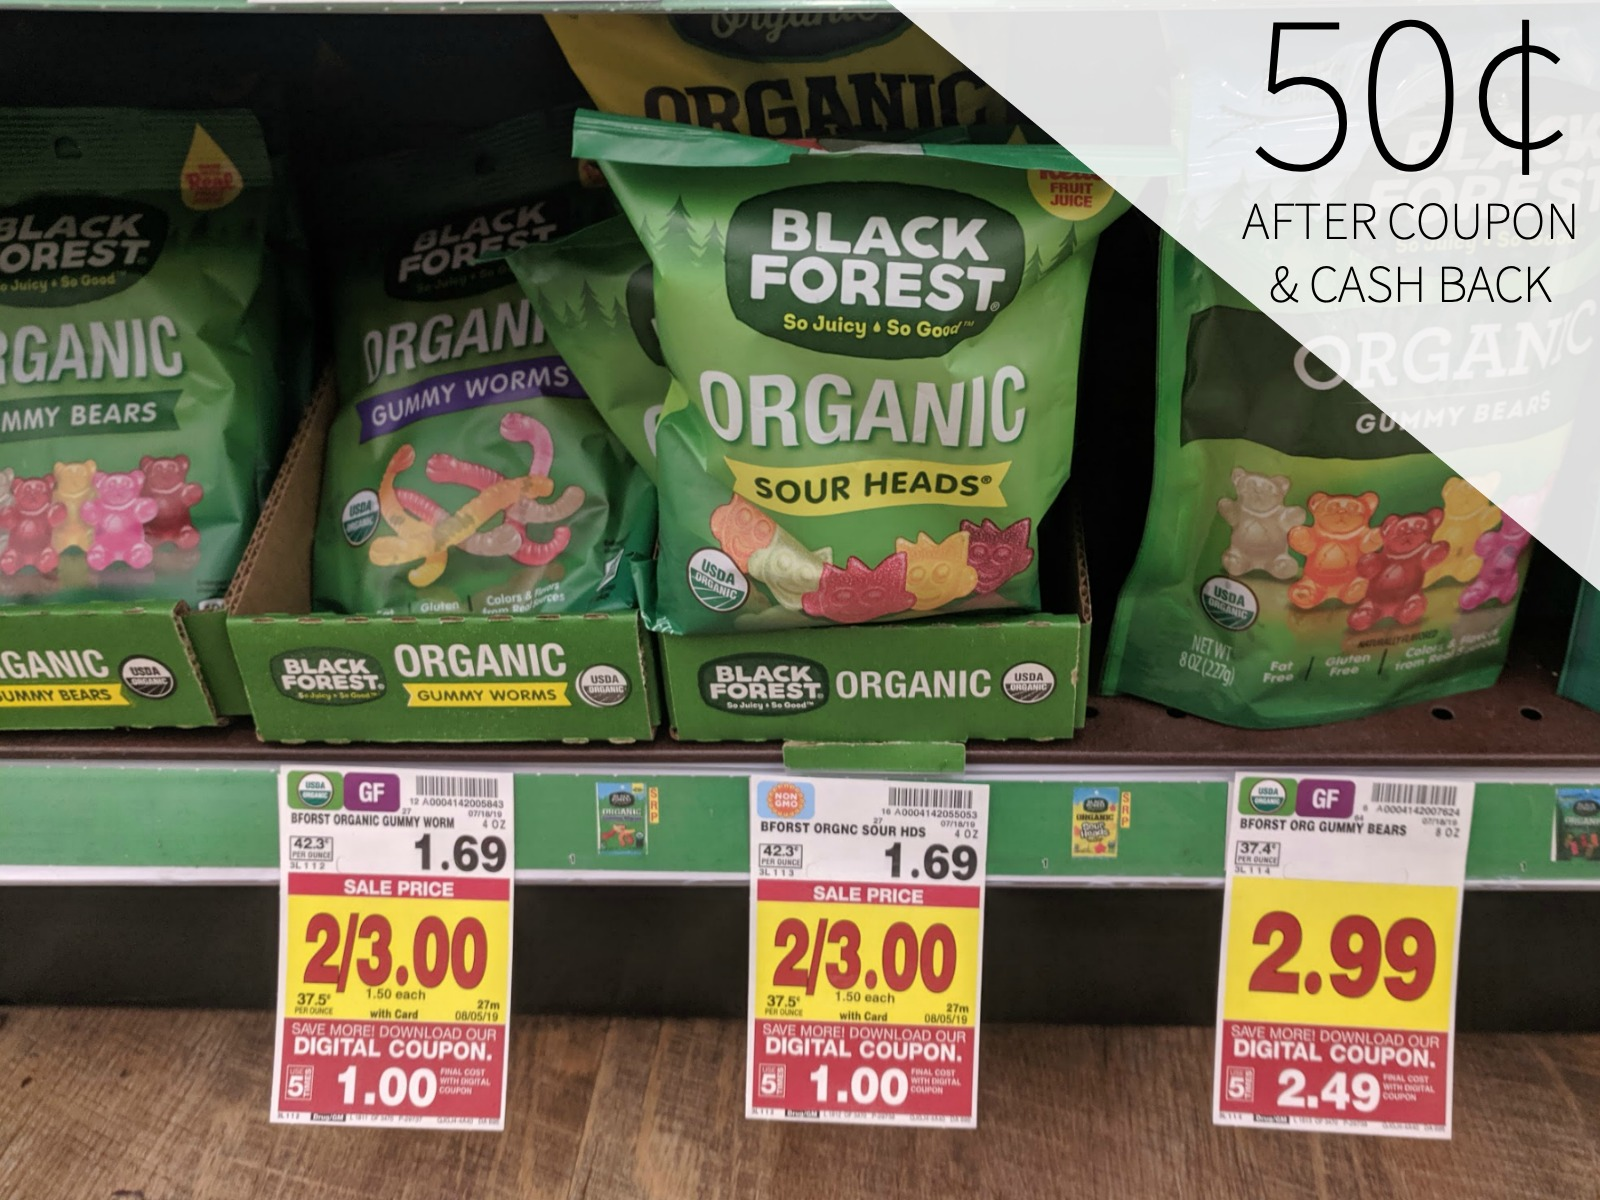 Black Forest Gummy Bears As Low As 50¢ At Kroger